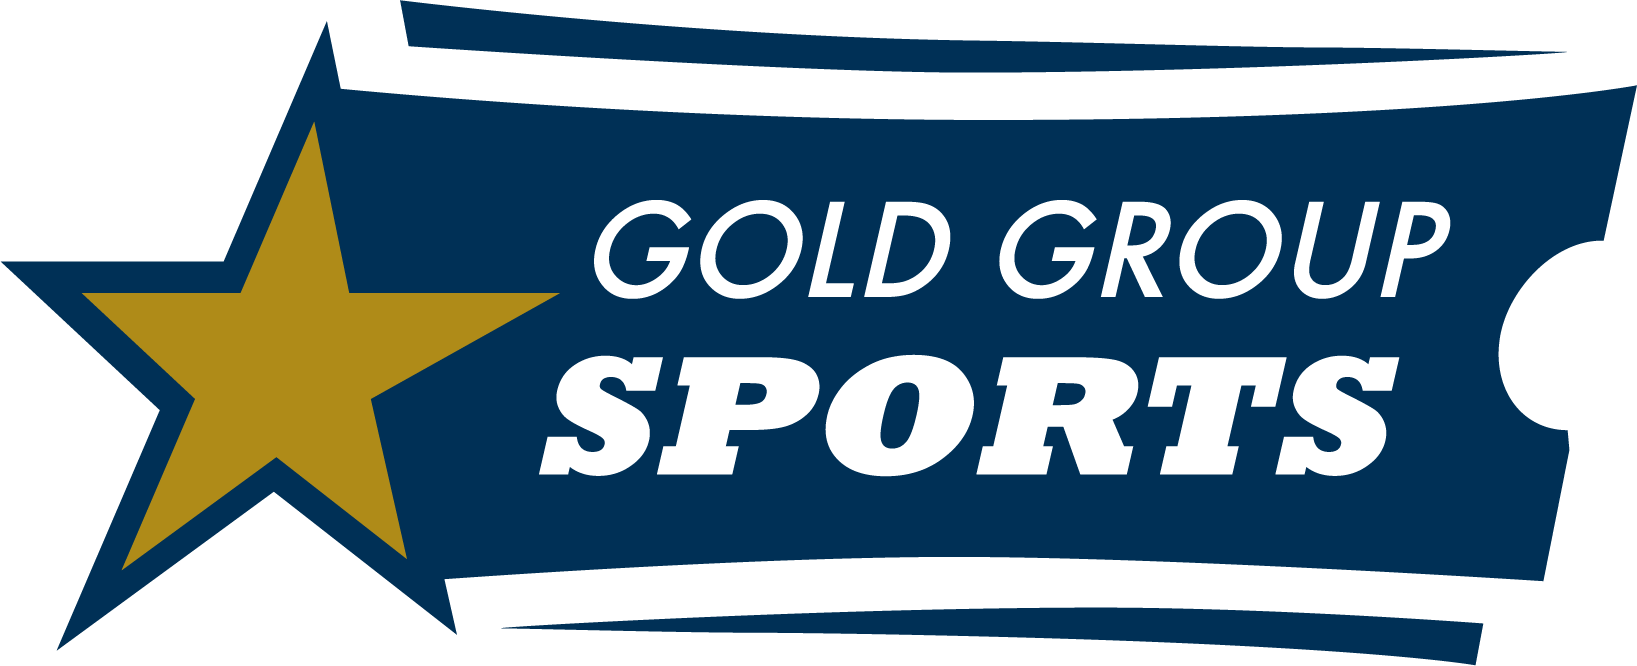 Gold_Group_Sports_logo_final_RGB.png